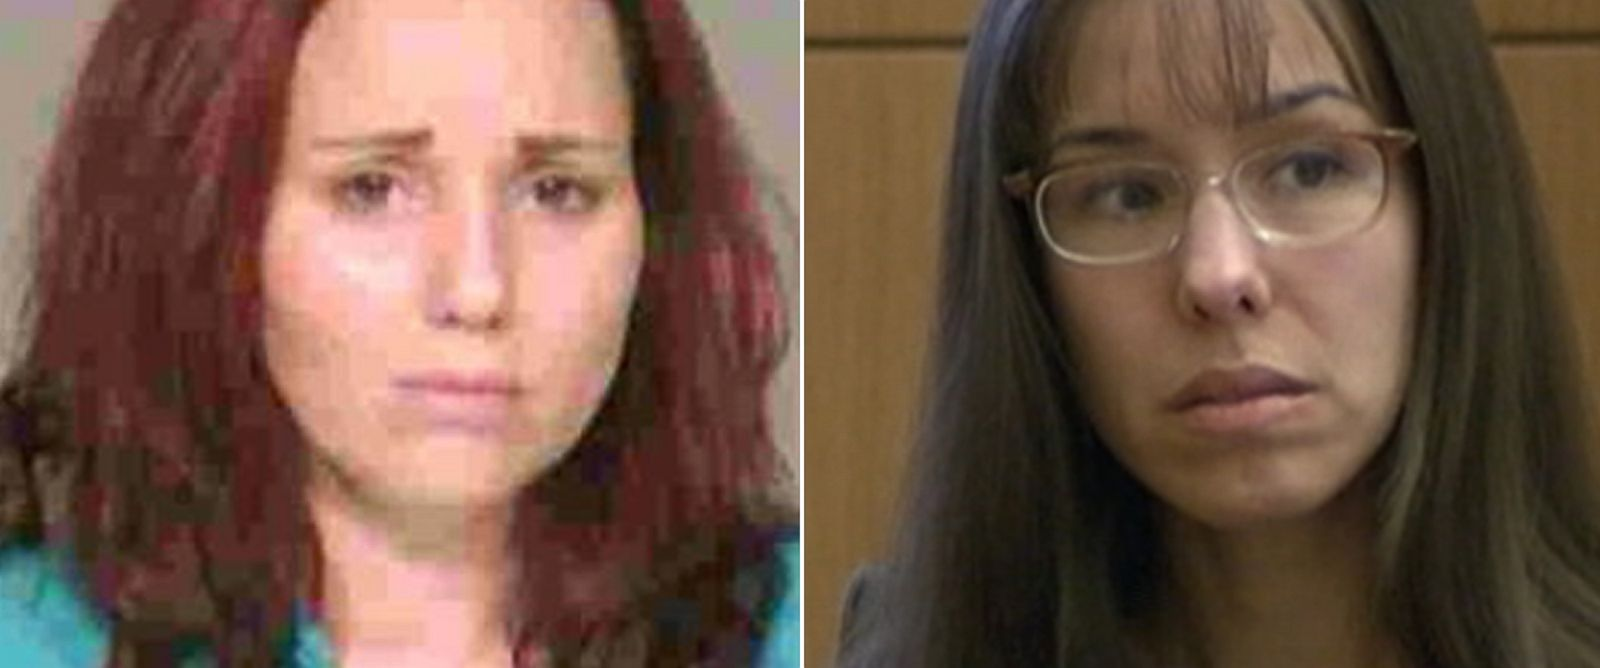 PHOTO: From left, Marissa DeVault in an undated mugshot, and Jodi Arias at her trial, March 4, 2012, in Phoenix.